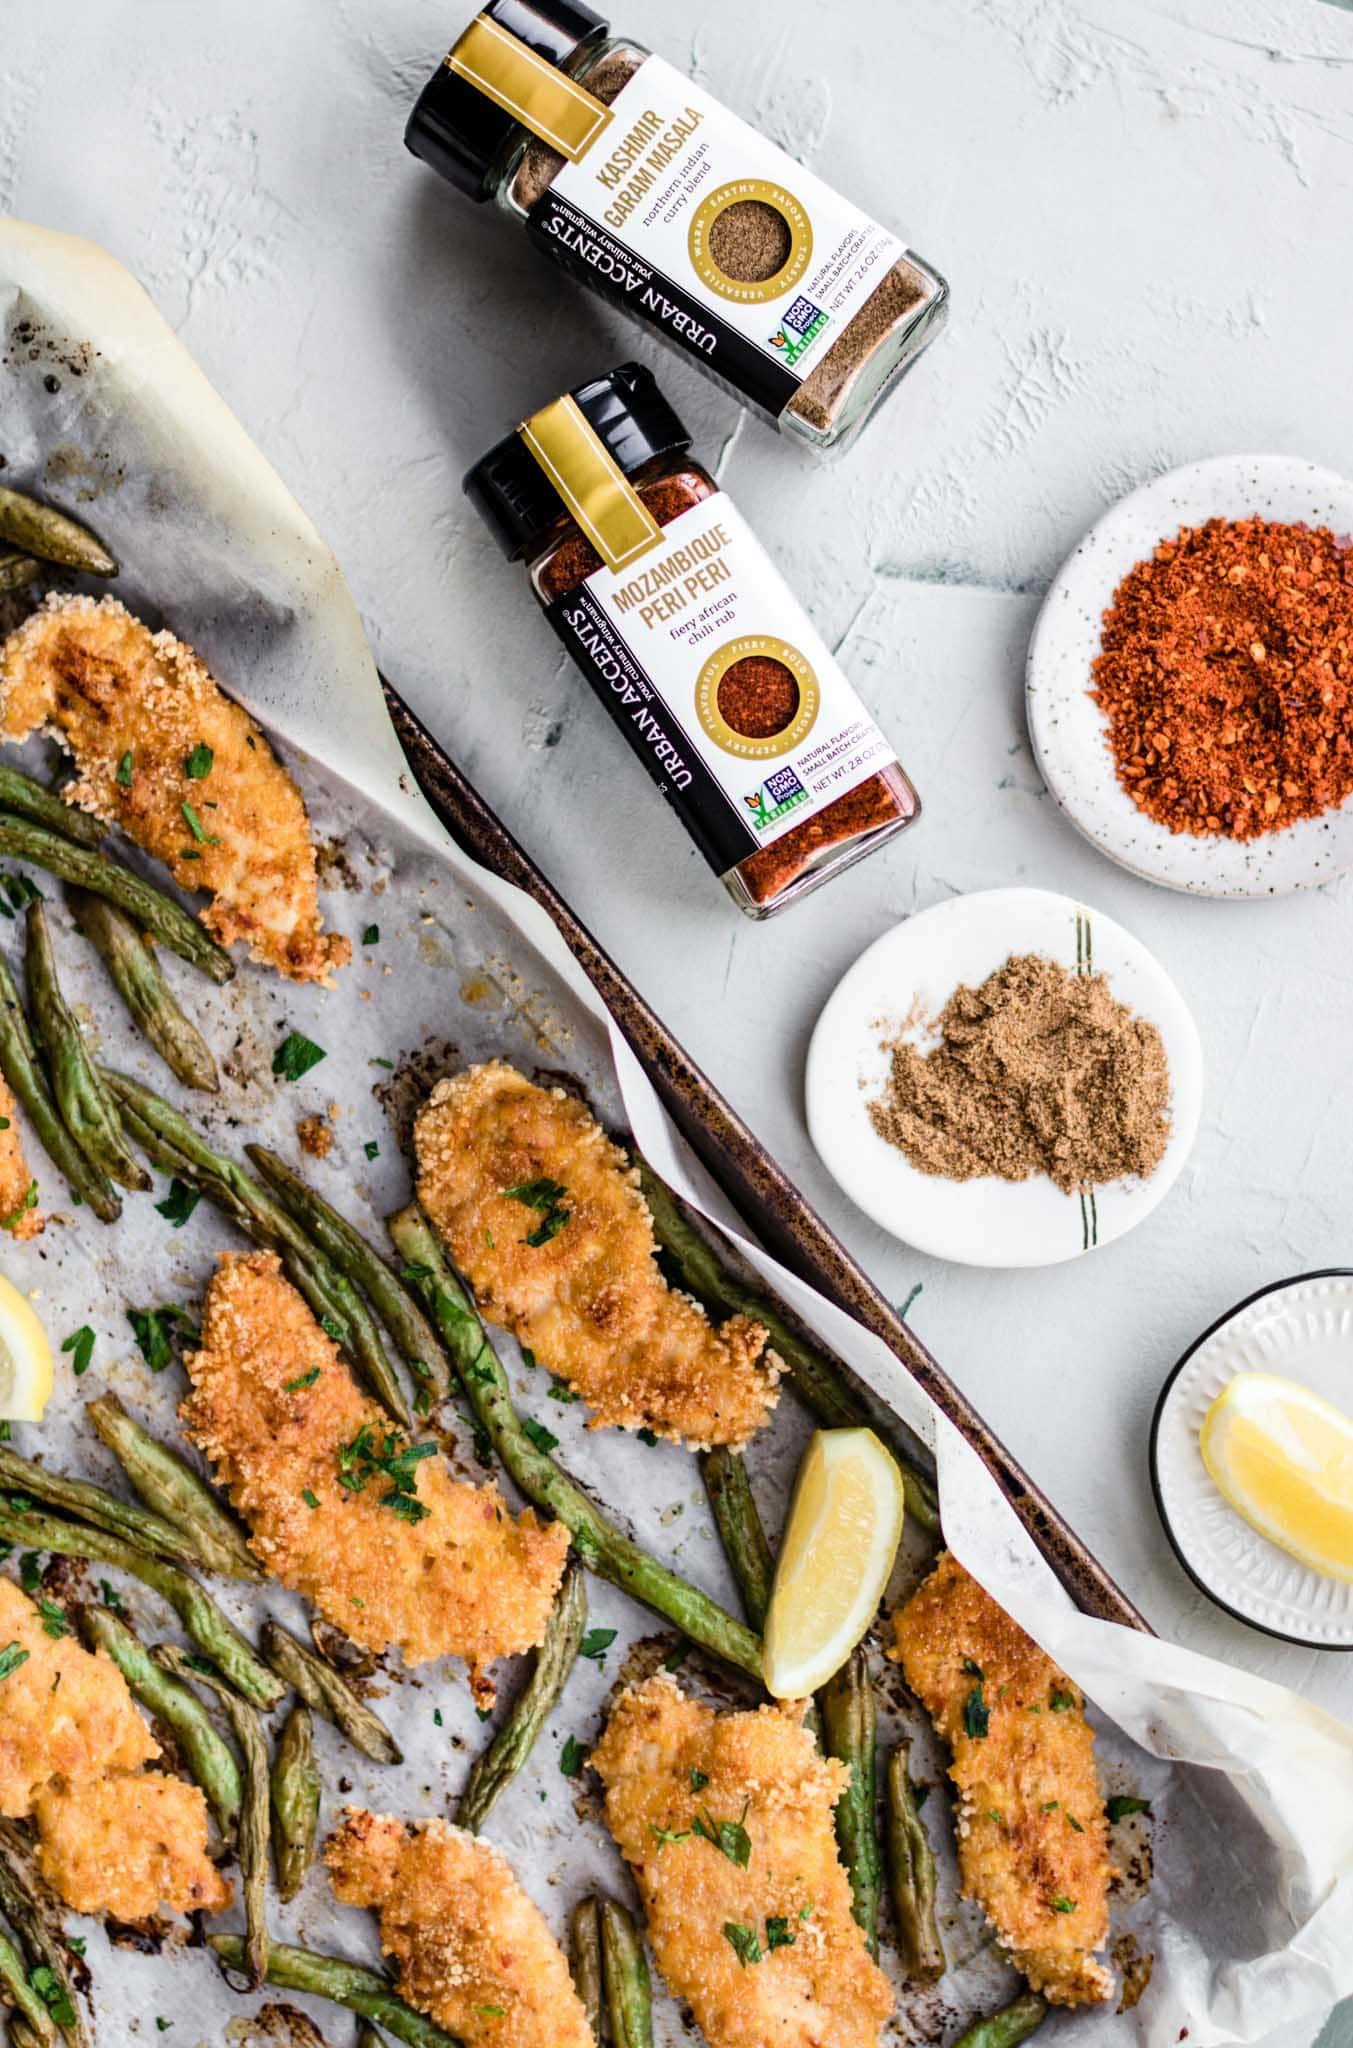 A parchment lined baking sheet with Baked Peri Peri Chicken Tenders and Masala Green Beans beside dishes containing Mozambique Peri Peri and Garam Masala spice blends.